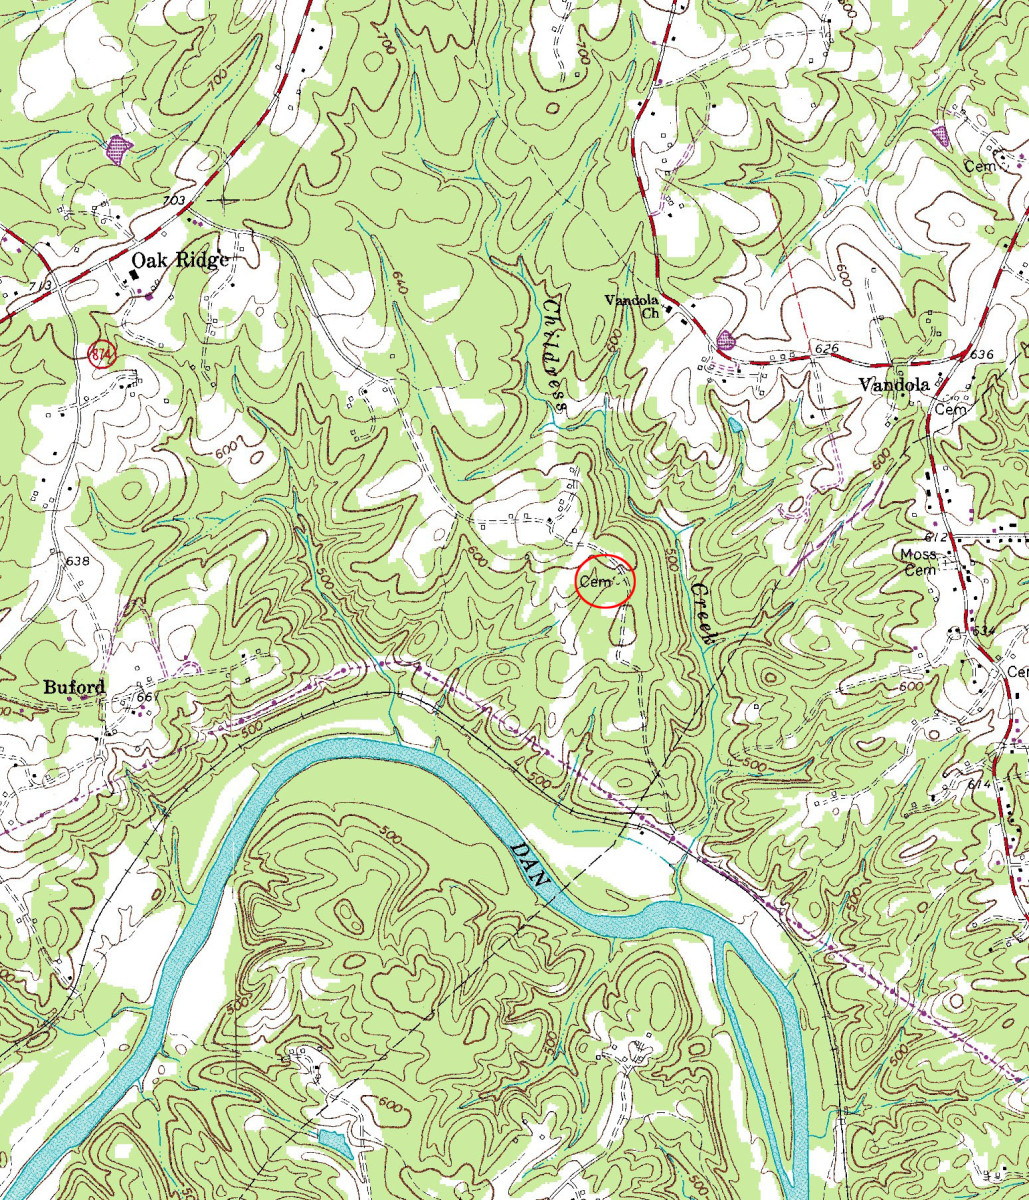 Topographical map of the Dan River